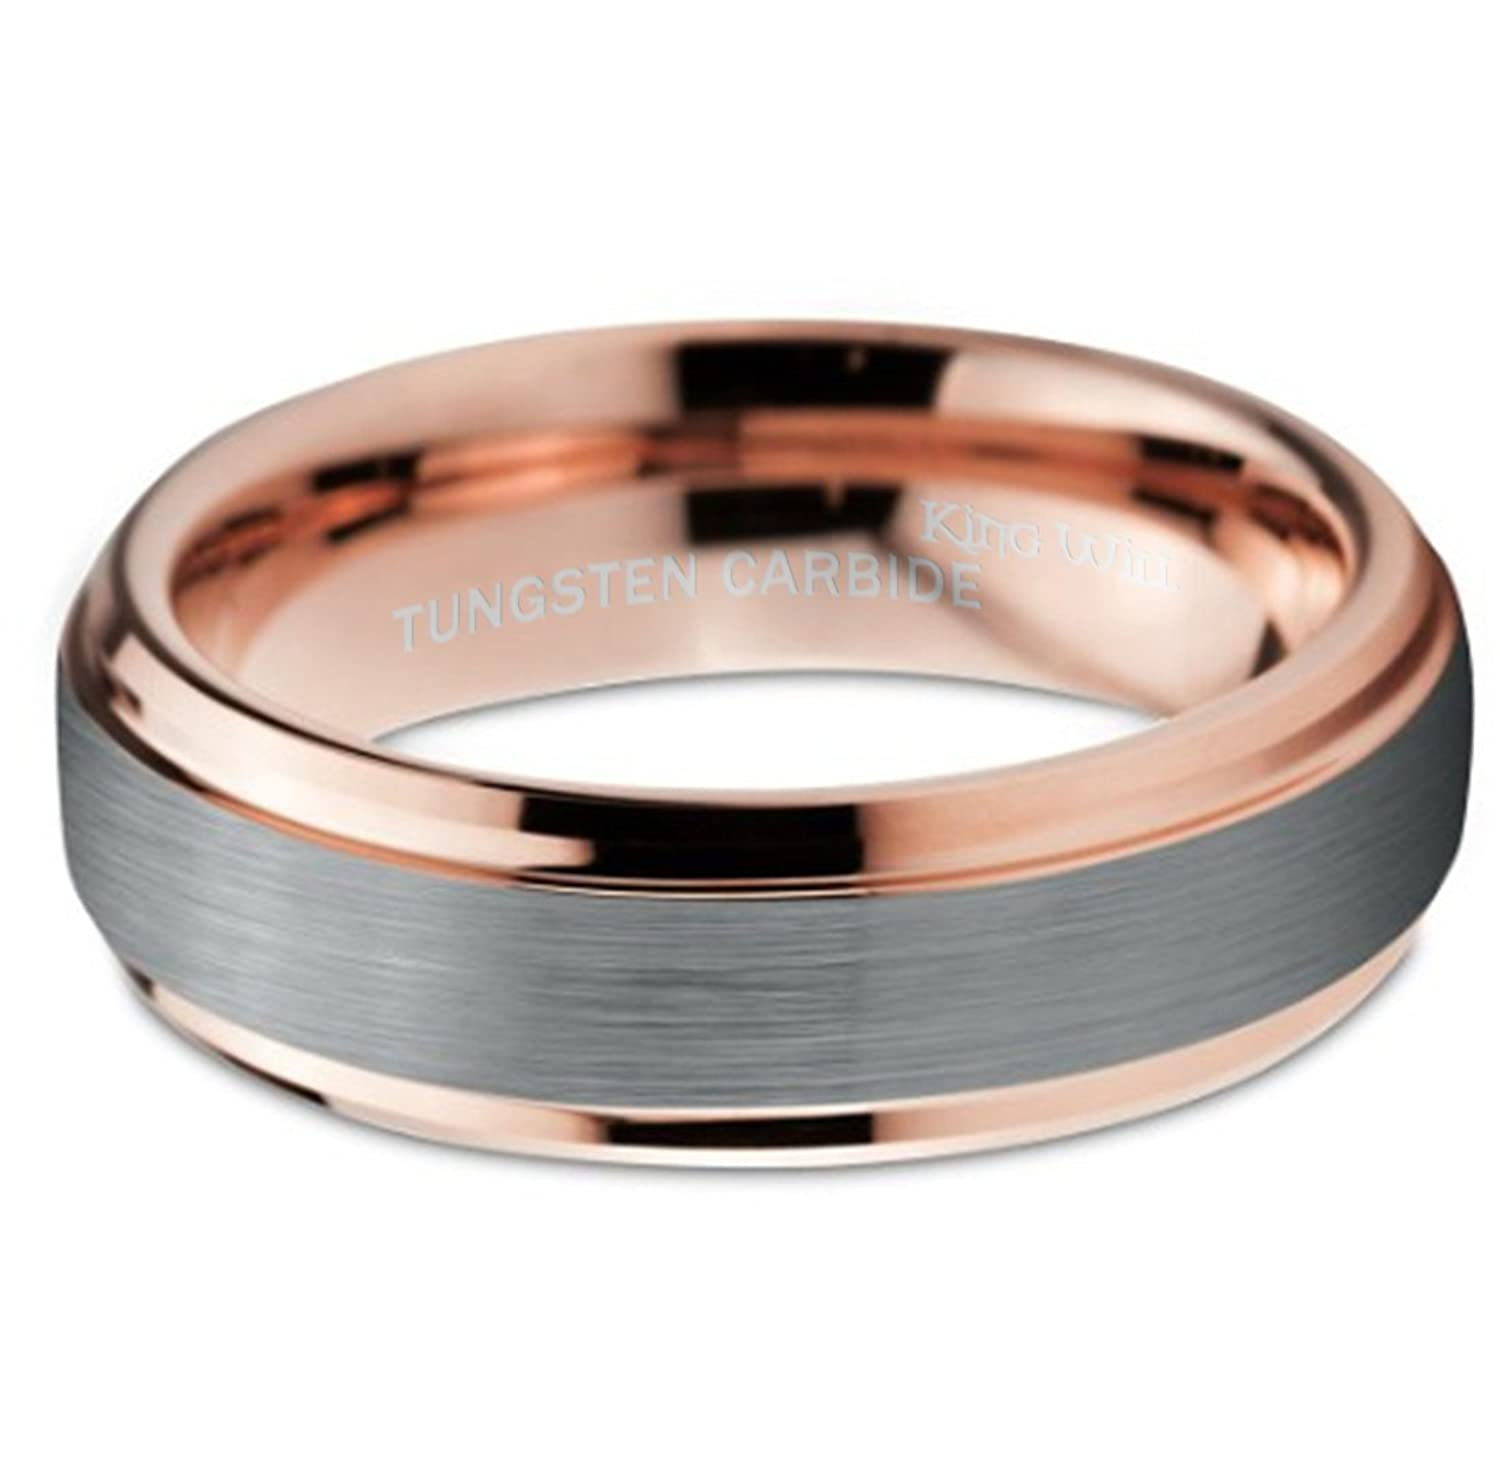 king will duo uni 6mm 18k rose gold plated tungsten carbide